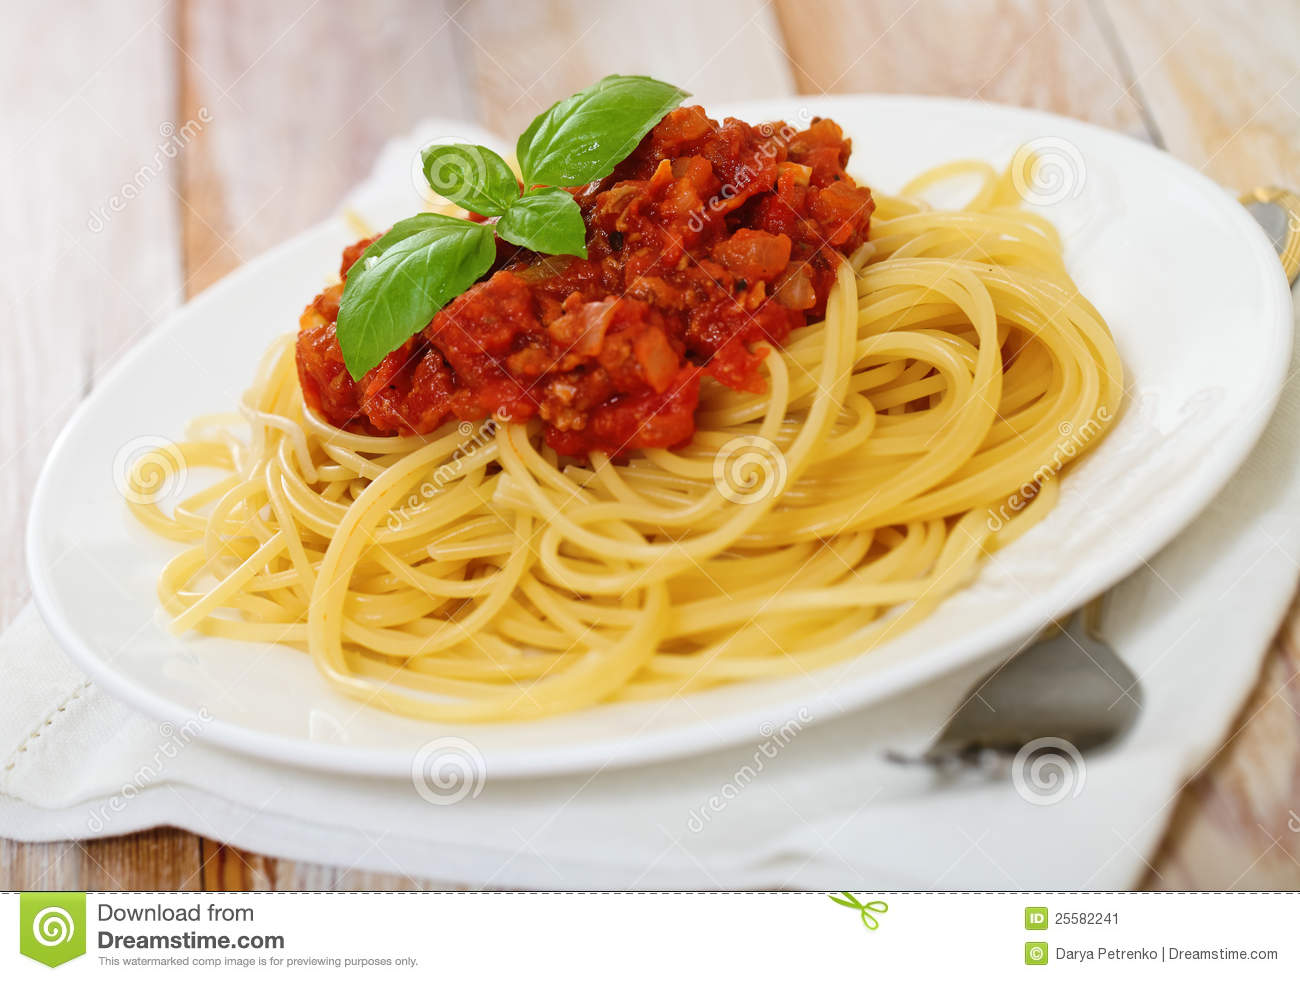 Spaghetti bolognese on white plate on wooden table